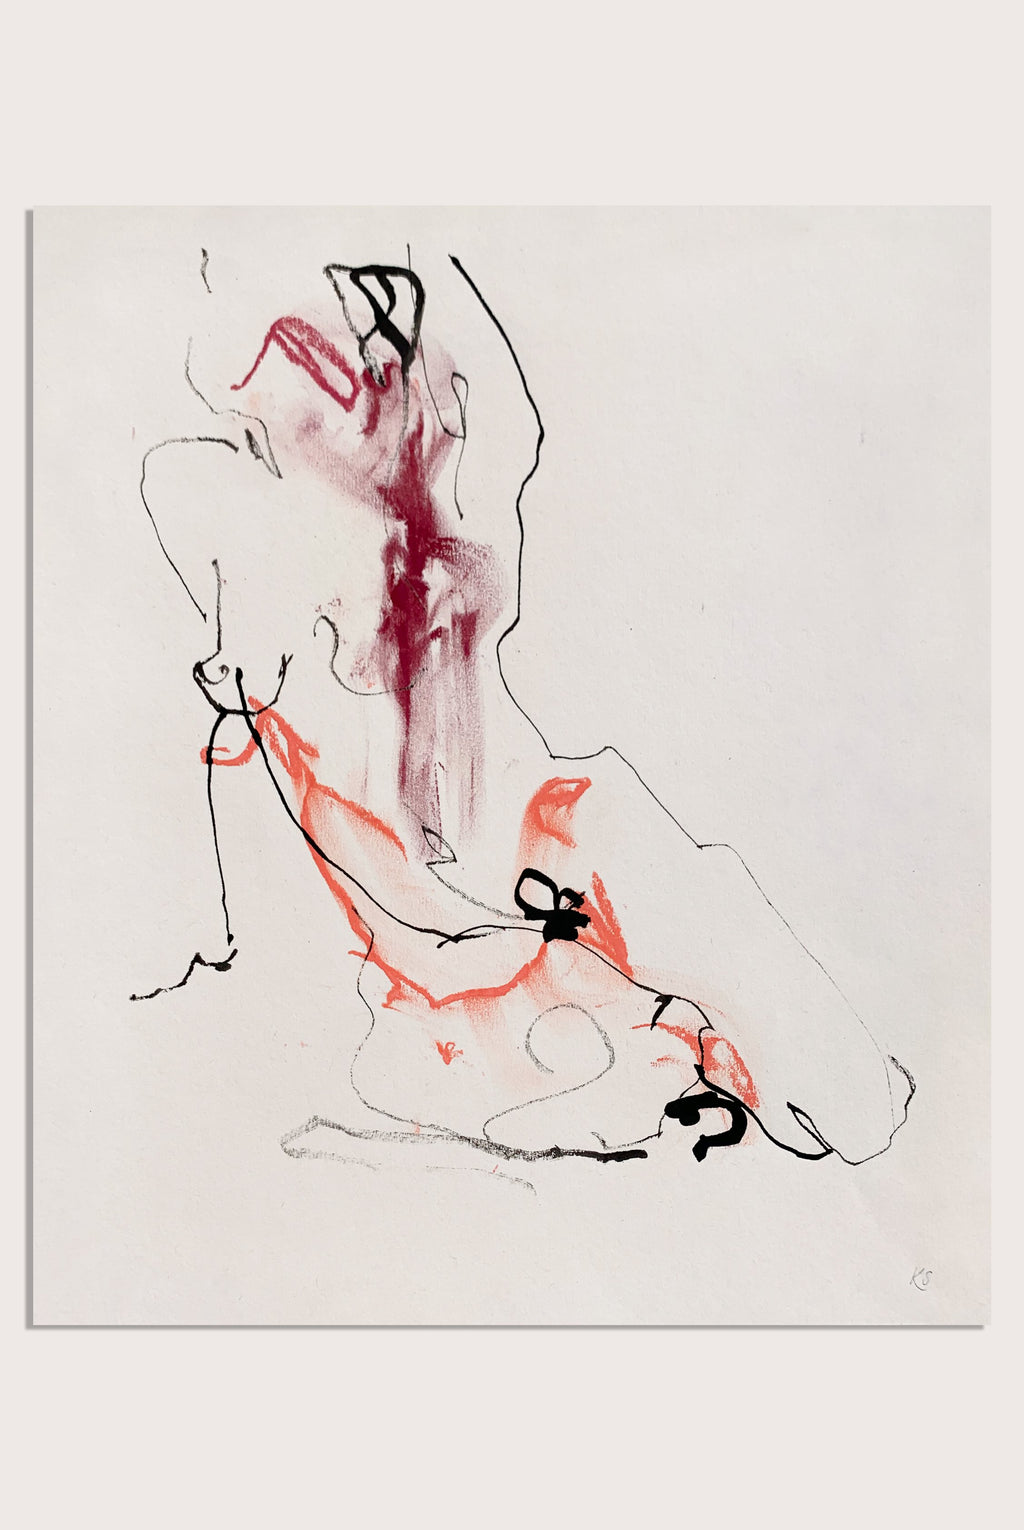 'What Lives Within Me', a life drawing by contemporary, woman artist Katherine Sheers